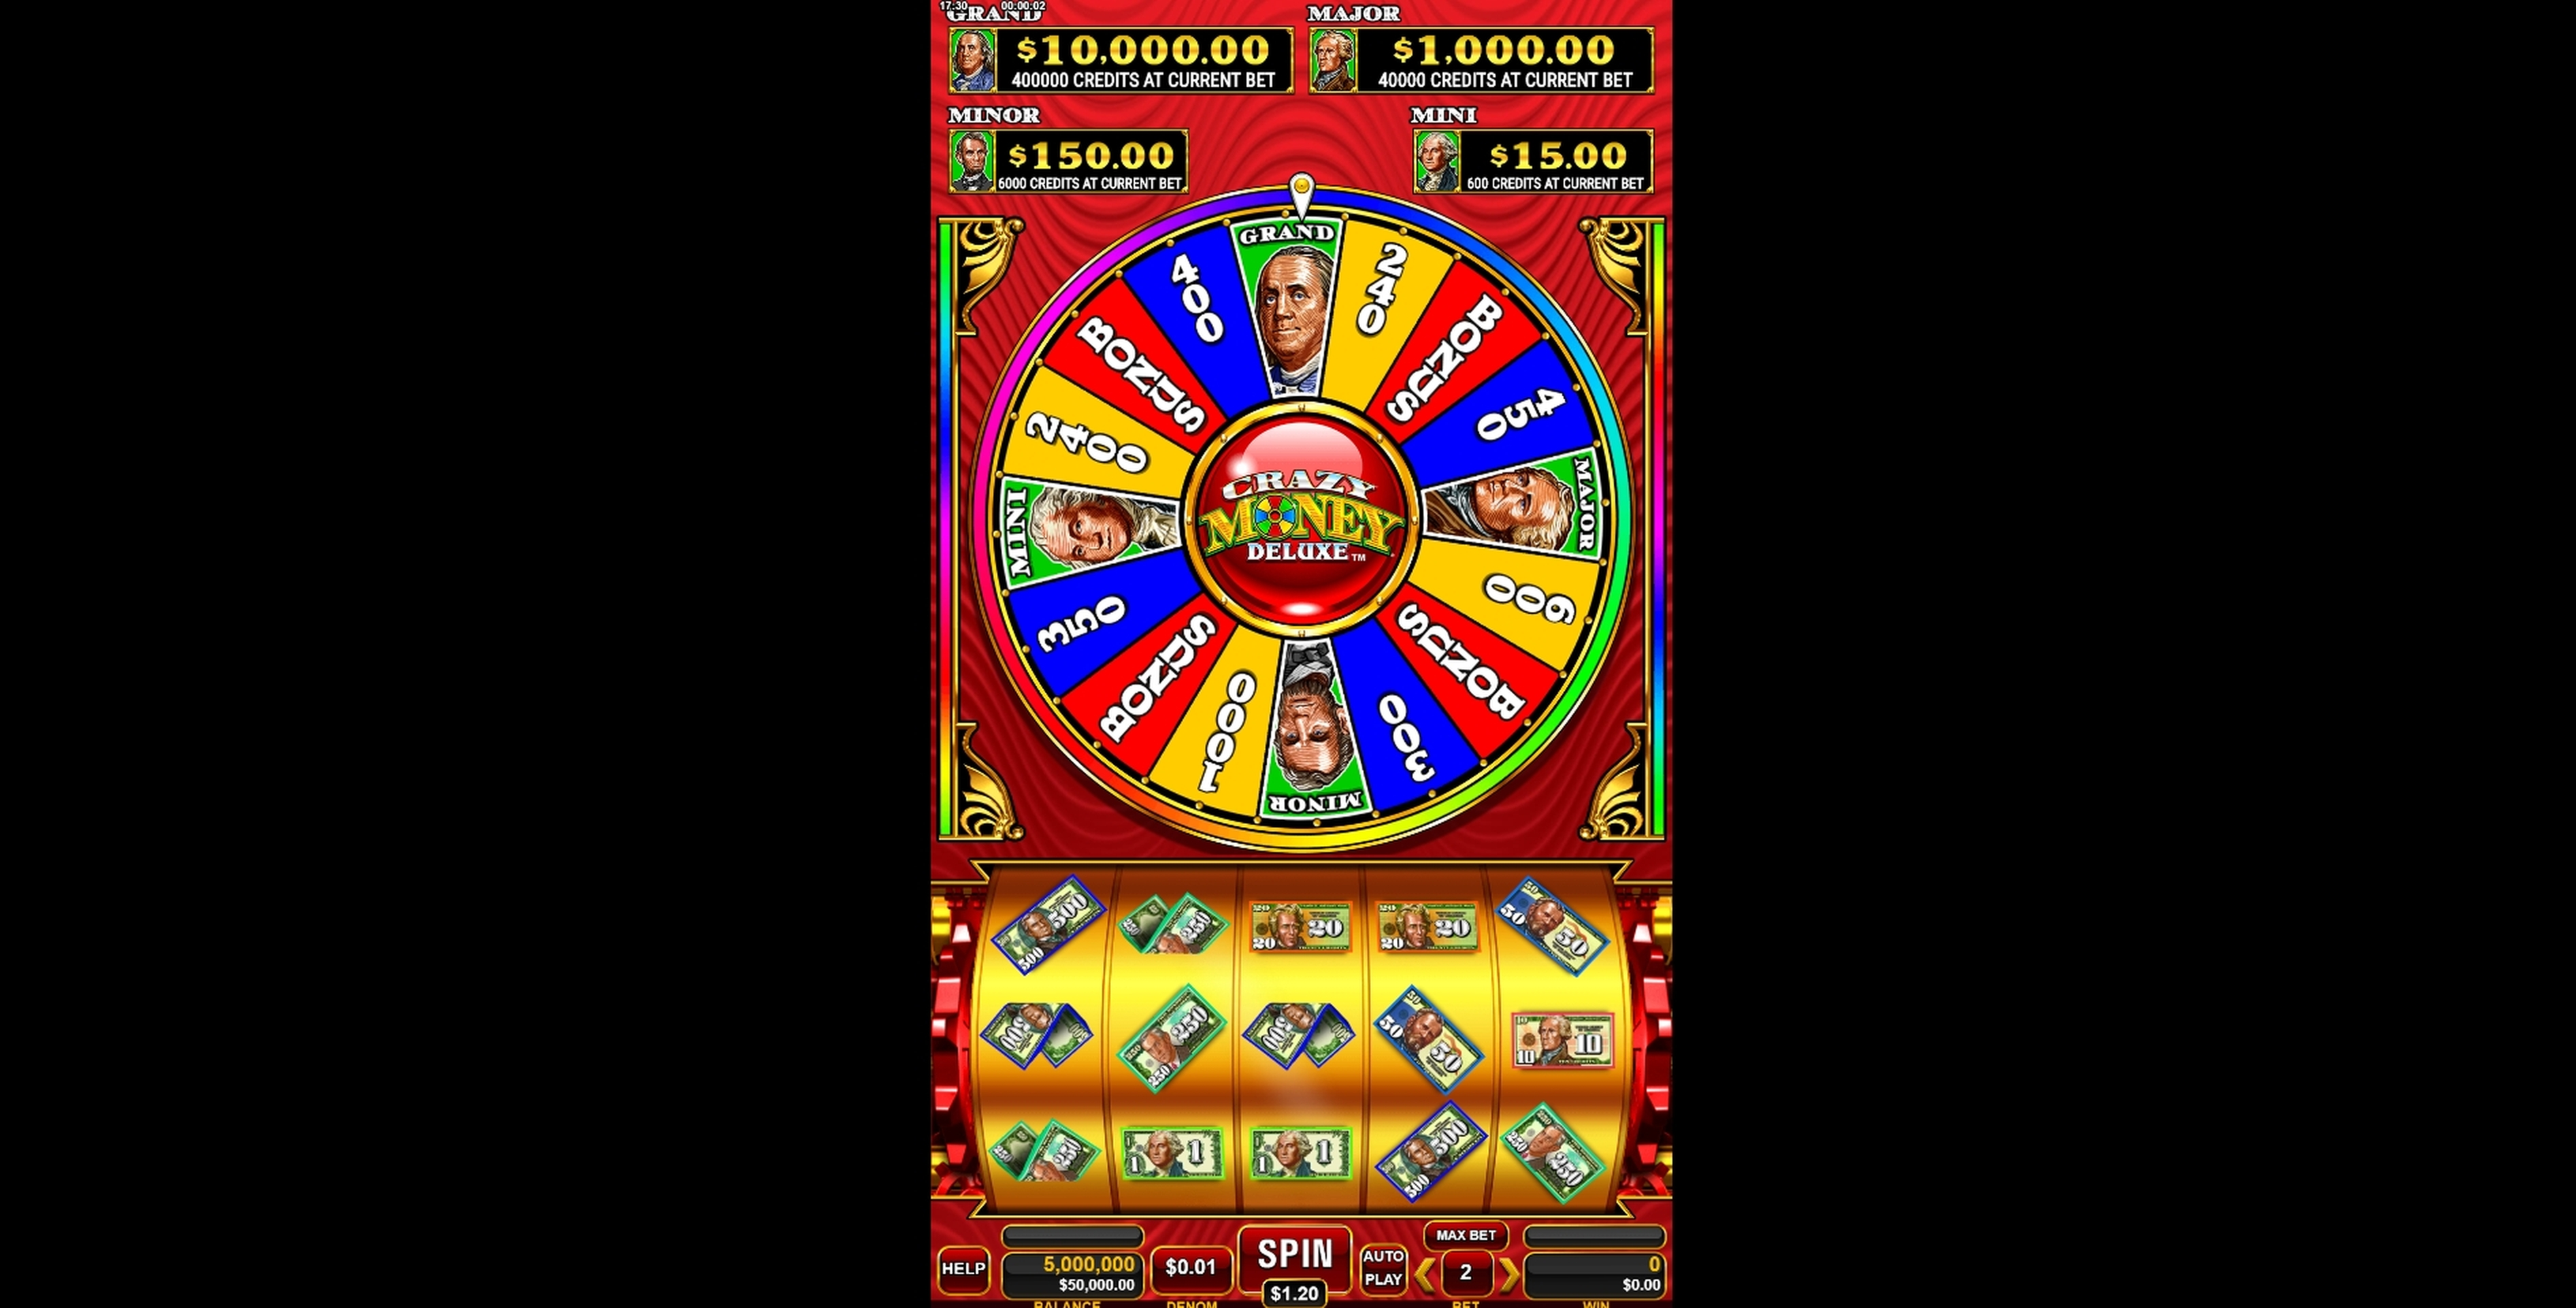 Reels in Crazy Money Deluxe Slot Game by Incredible Technologies